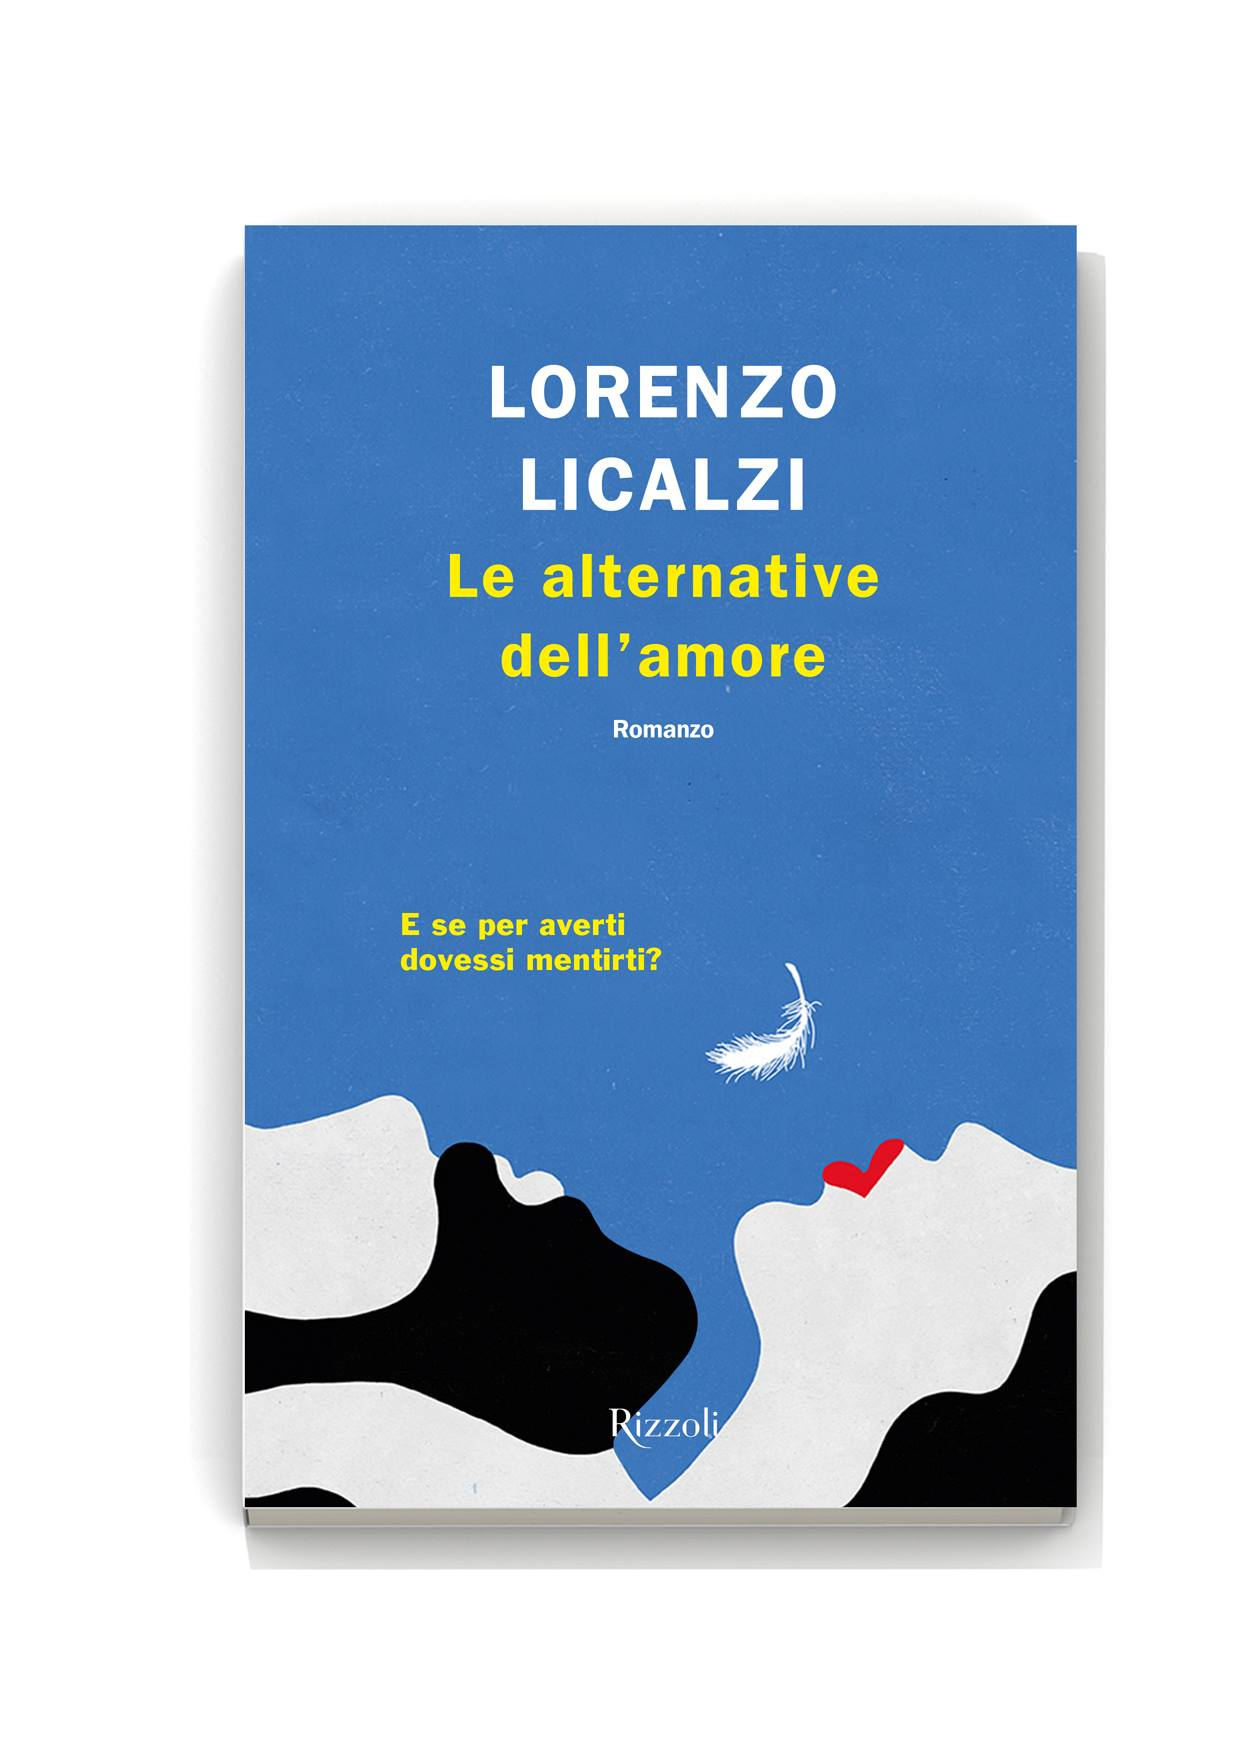 Joanna-Gniady-Licarzi-Book-Cover-net